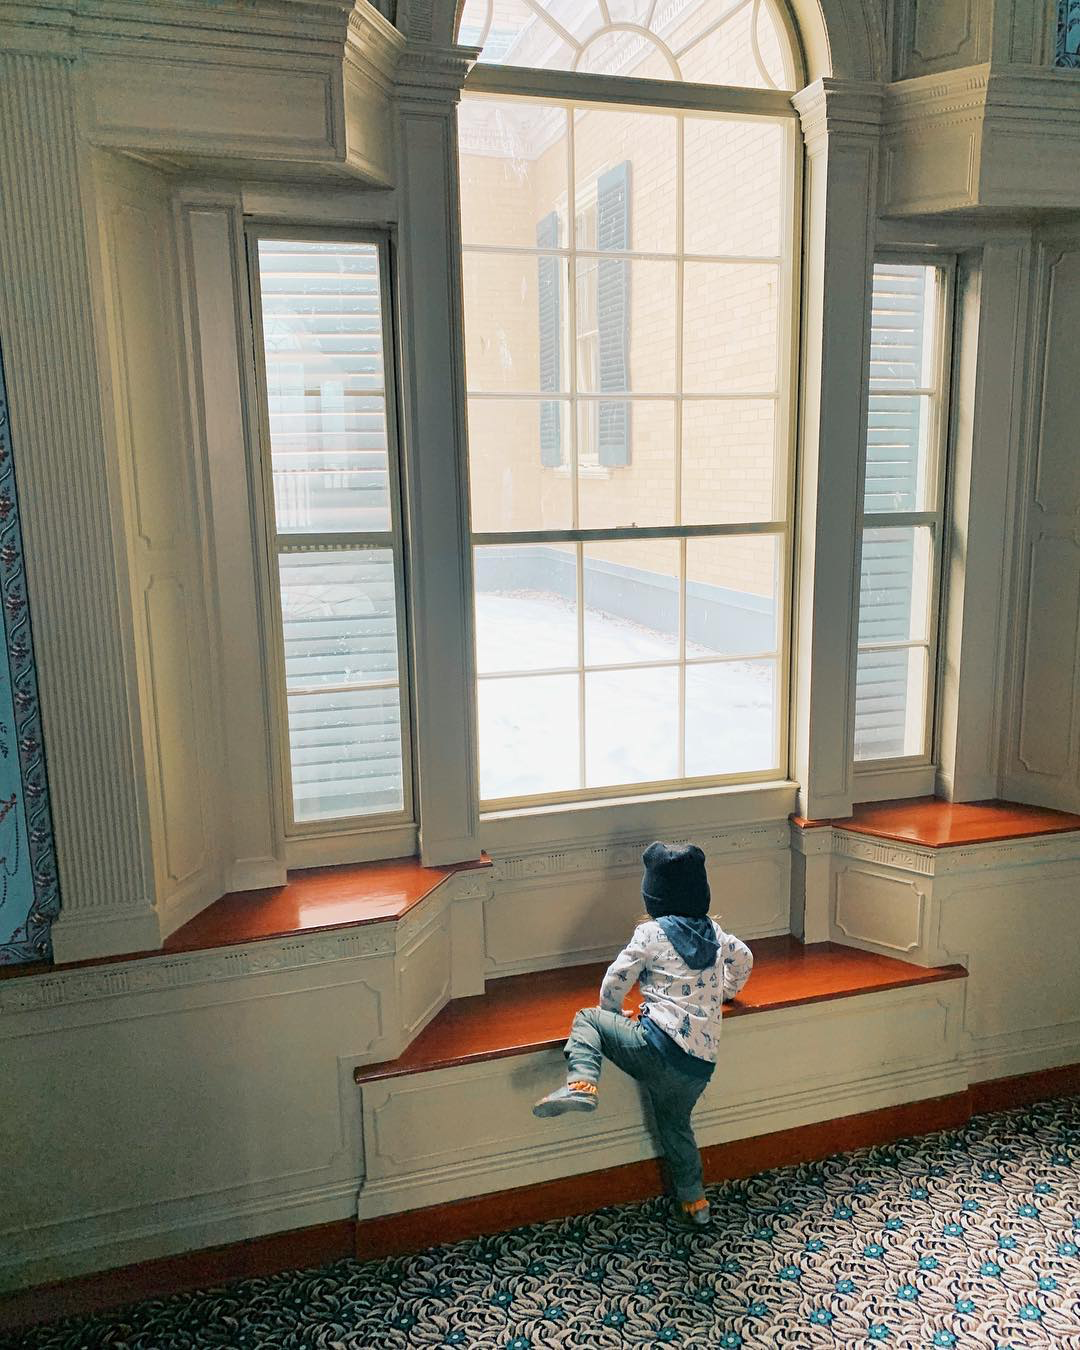 Child climbing into an ornate window seat.